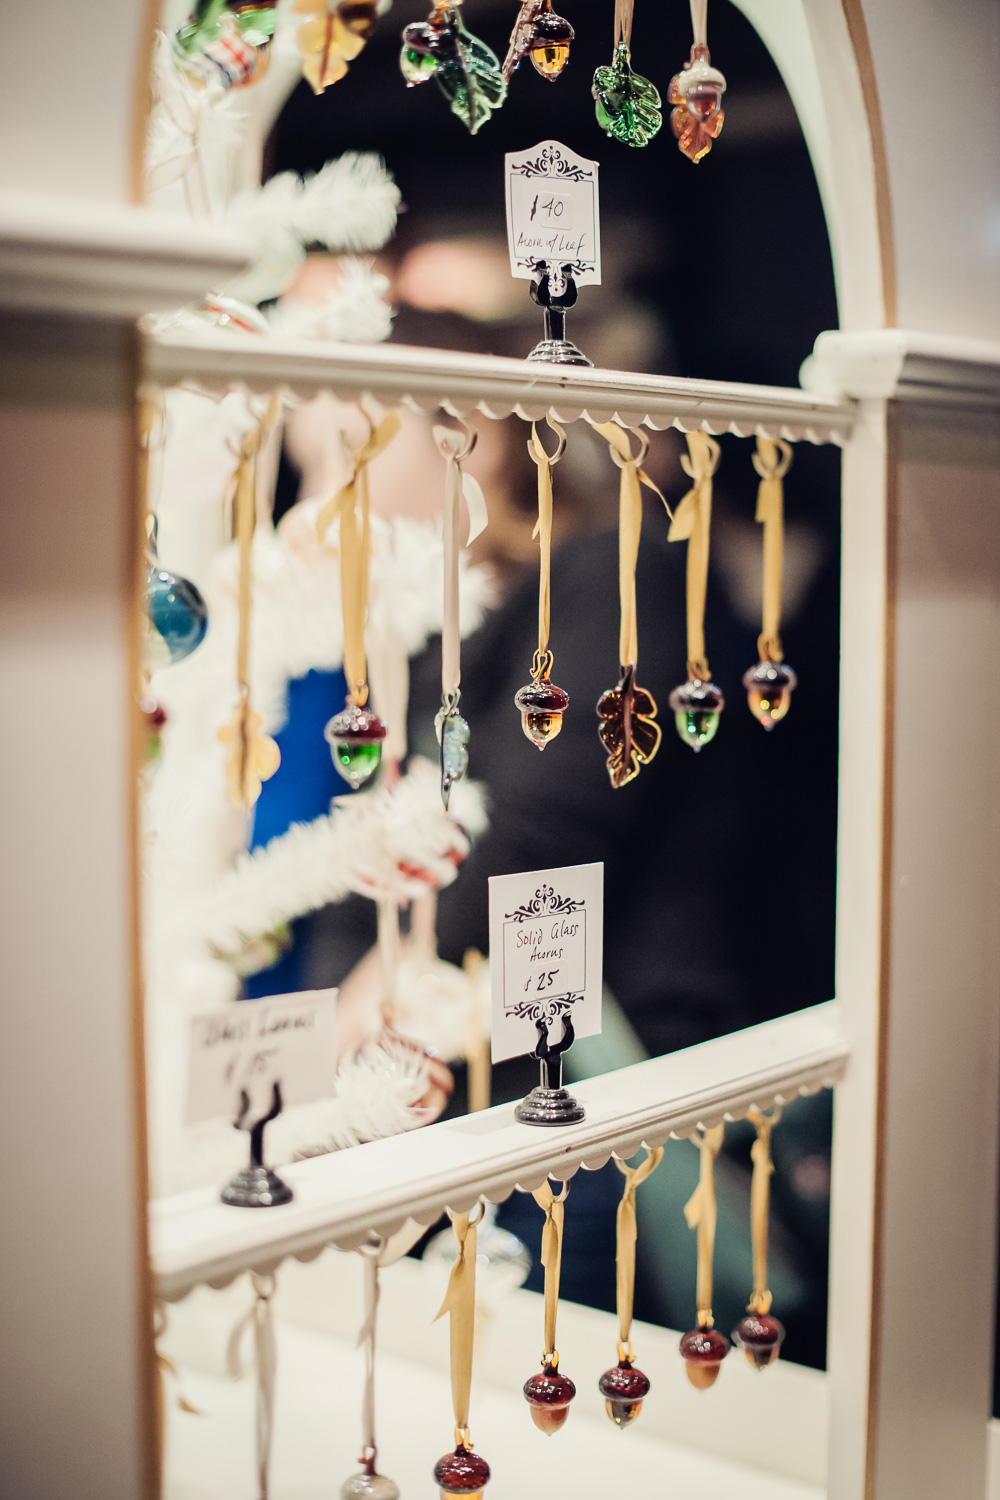 Ornaments // The Great Christmas Dickens Fair // Ashley Petersen Photo